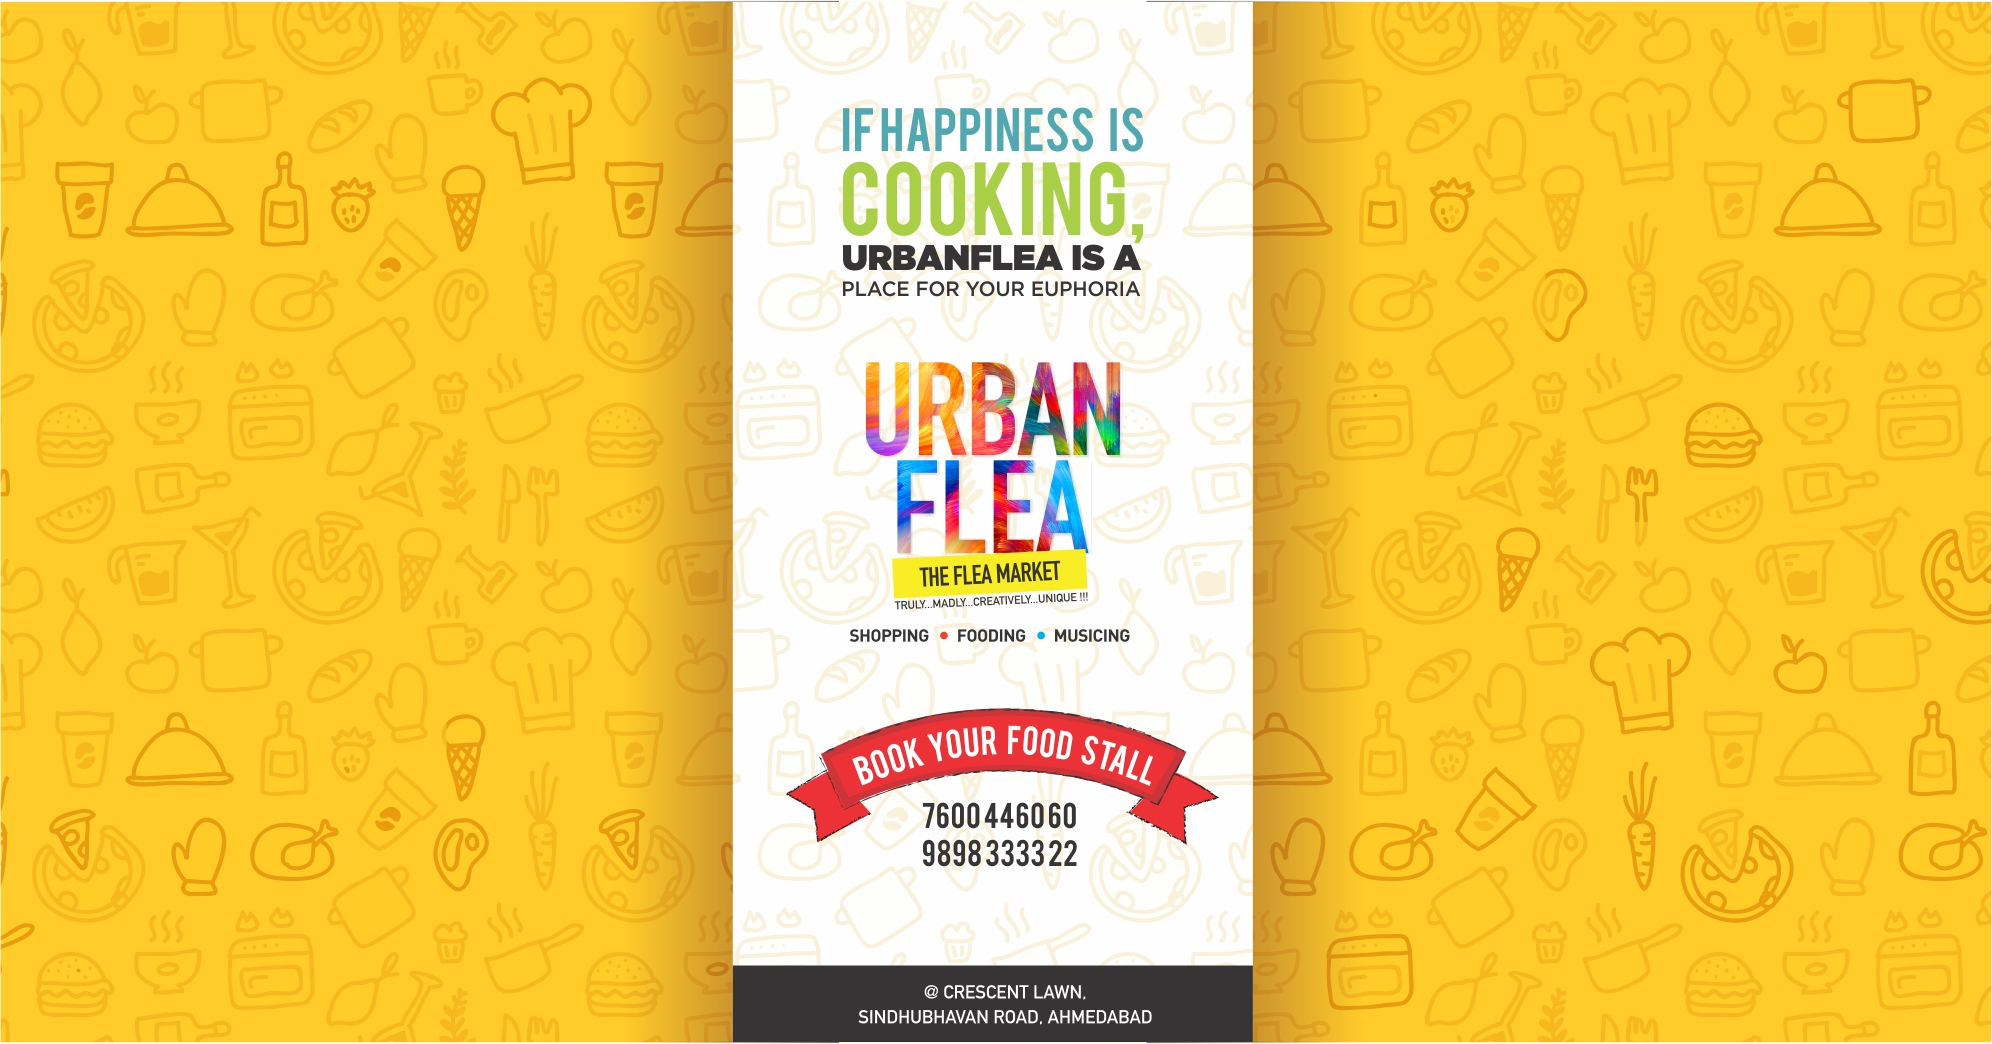 URBAN FLEA brings more & more